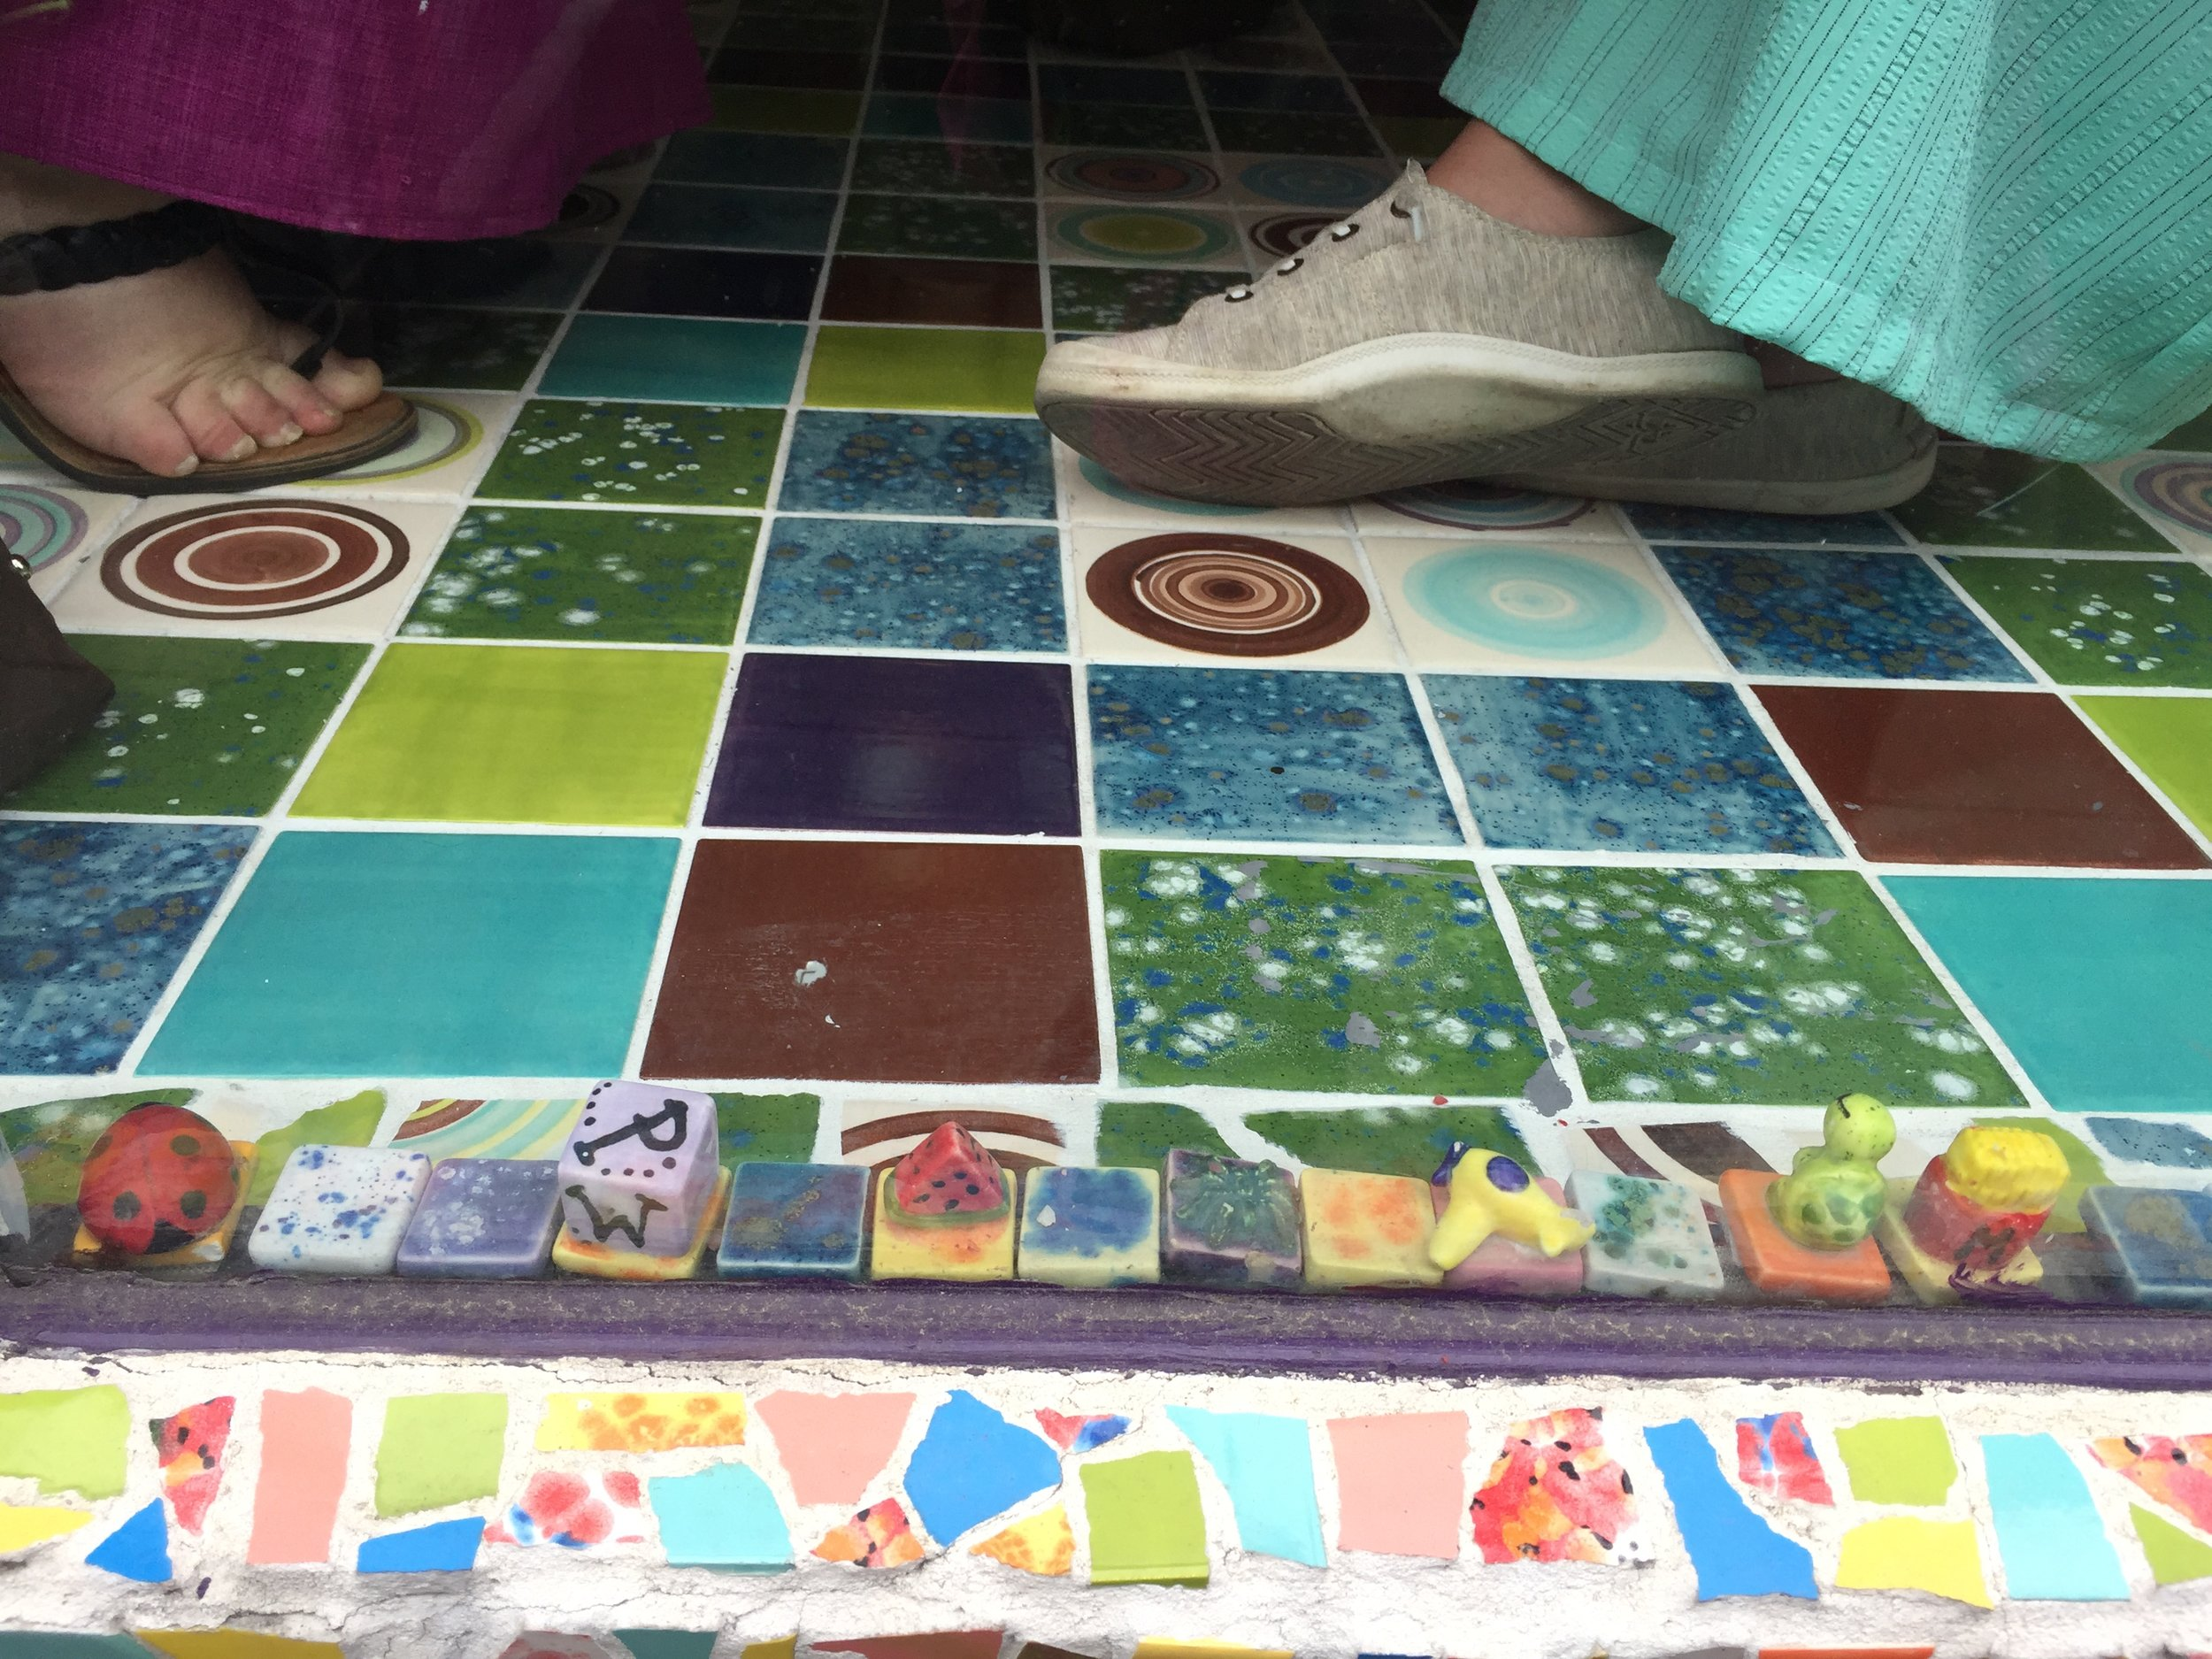 check out the tiny 3-d tiles